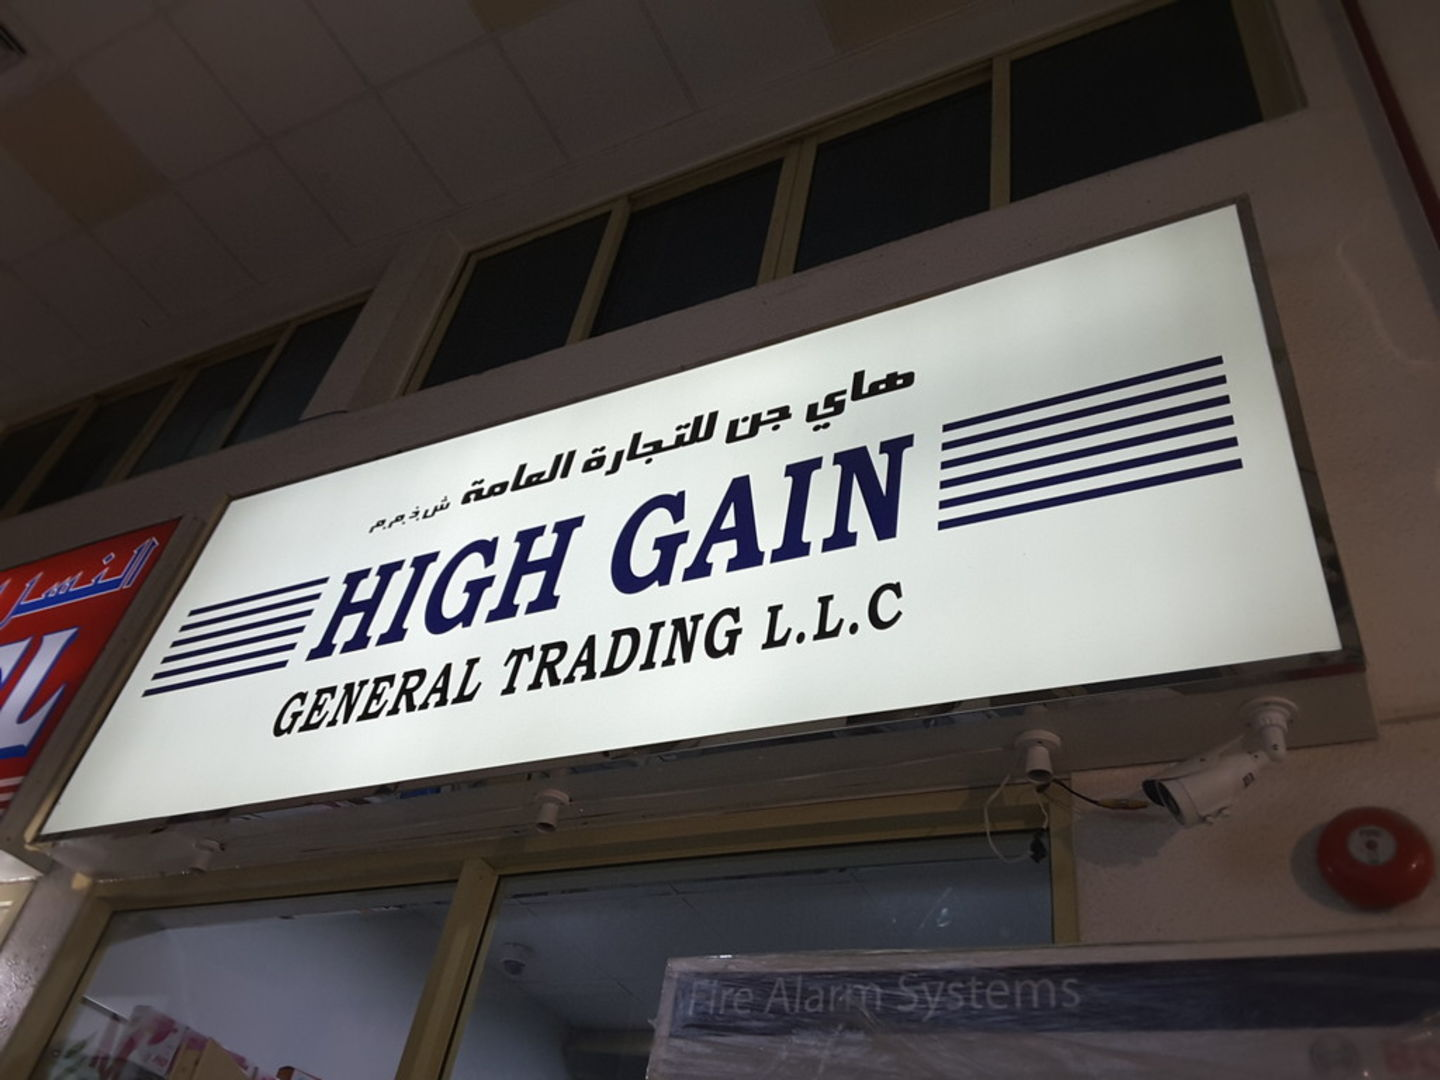 HiDubai-business-high-gain-general-trading-shopping-consumer-electronics-naif-dubai-2